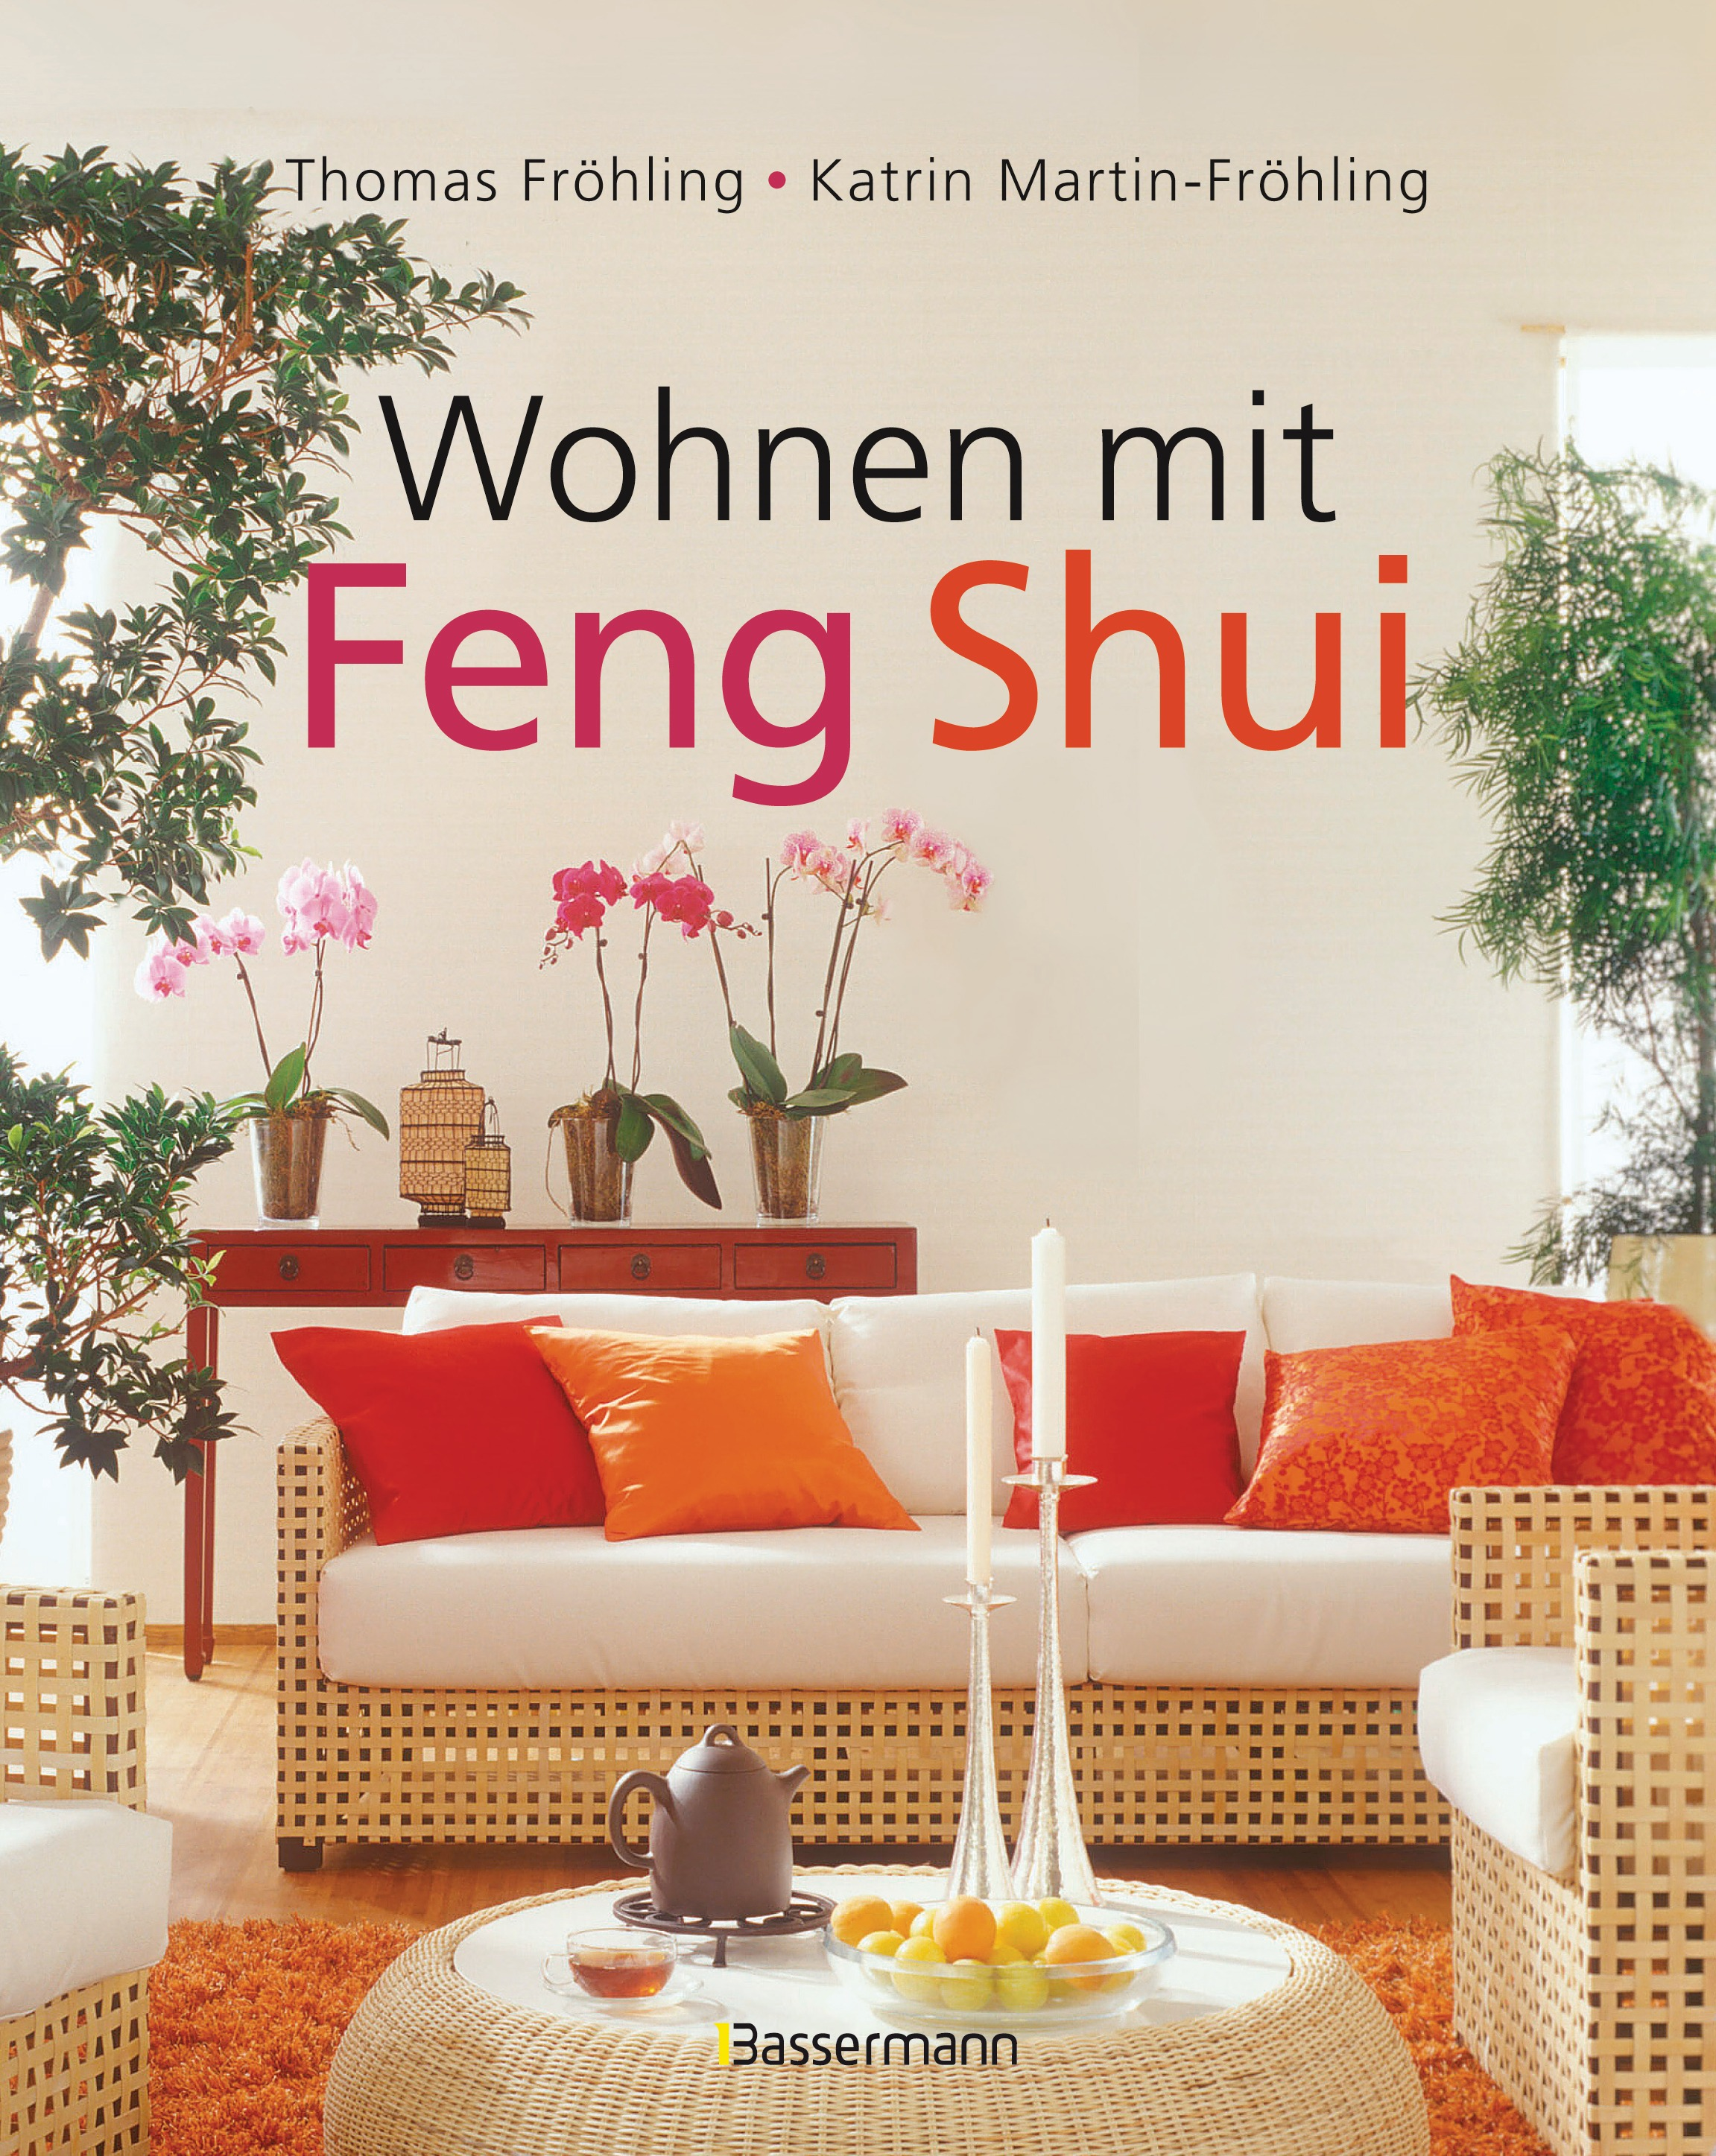 thomas fr hling wohnen mit feng shui bassermann verlag ebook. Black Bedroom Furniture Sets. Home Design Ideas